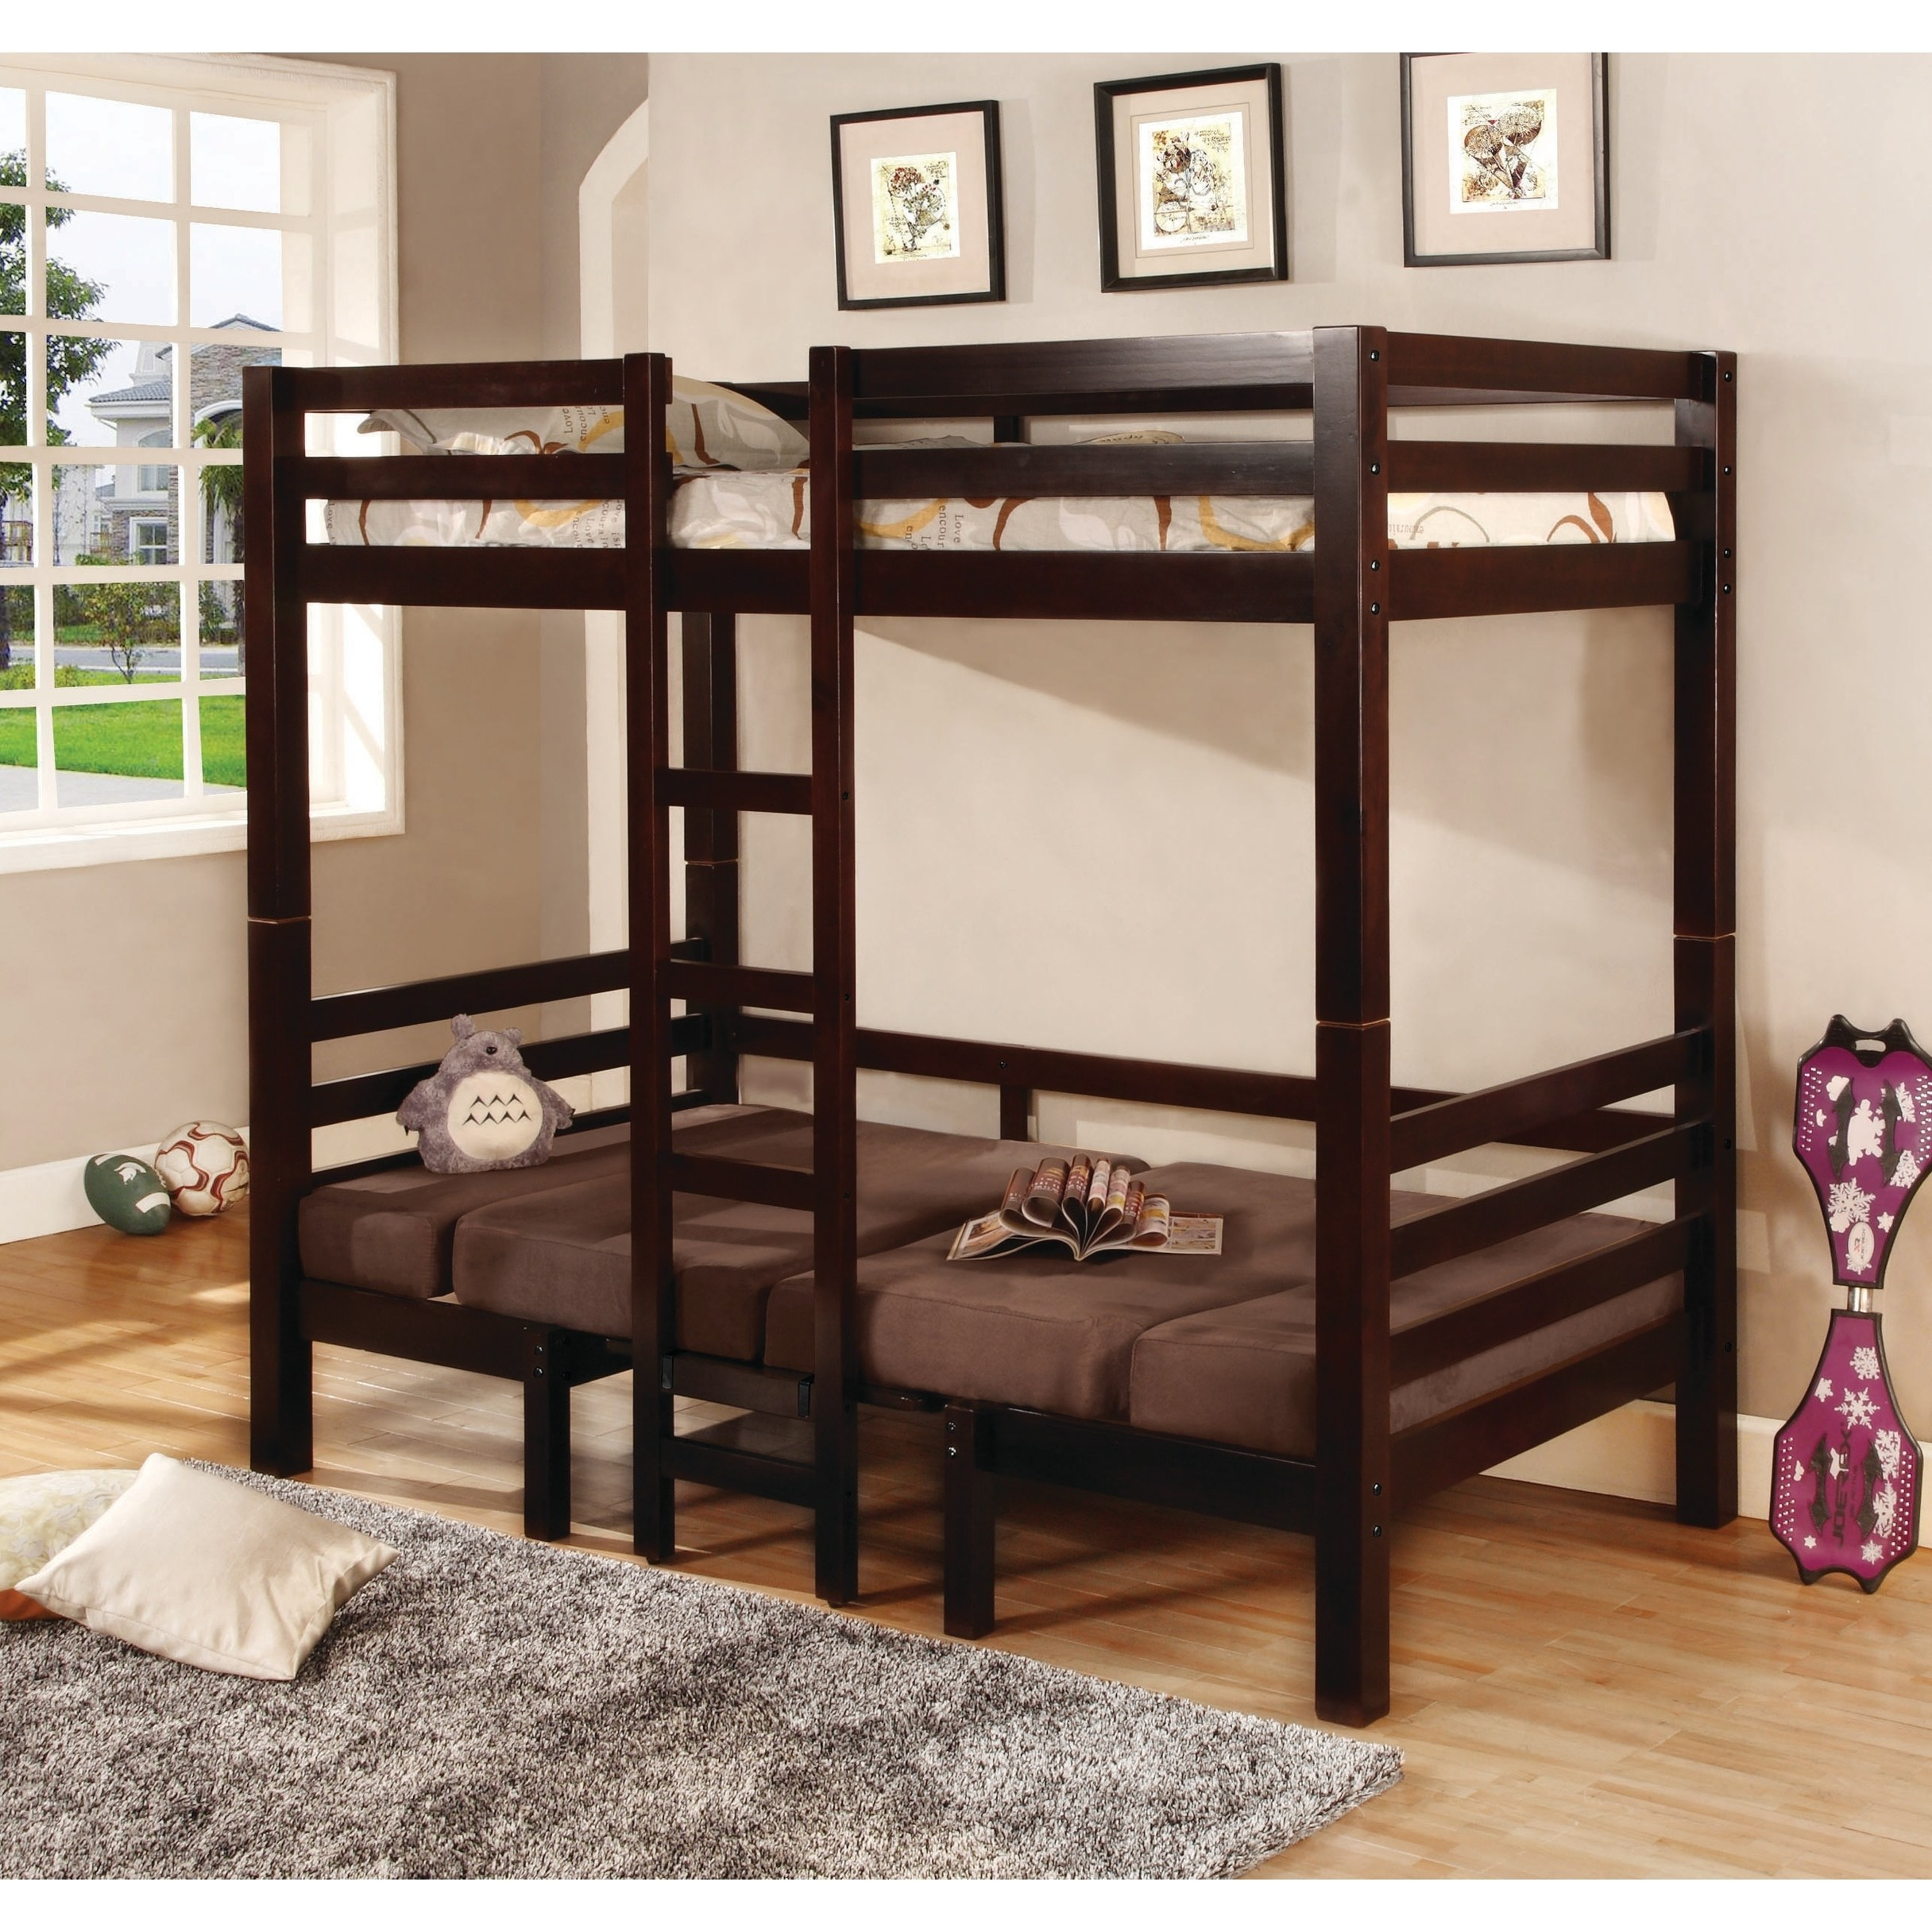 Coaster Joaquin convertible loft bed, twin over twin.  Medium brown finish with microfiber uphostered fabric in brown.